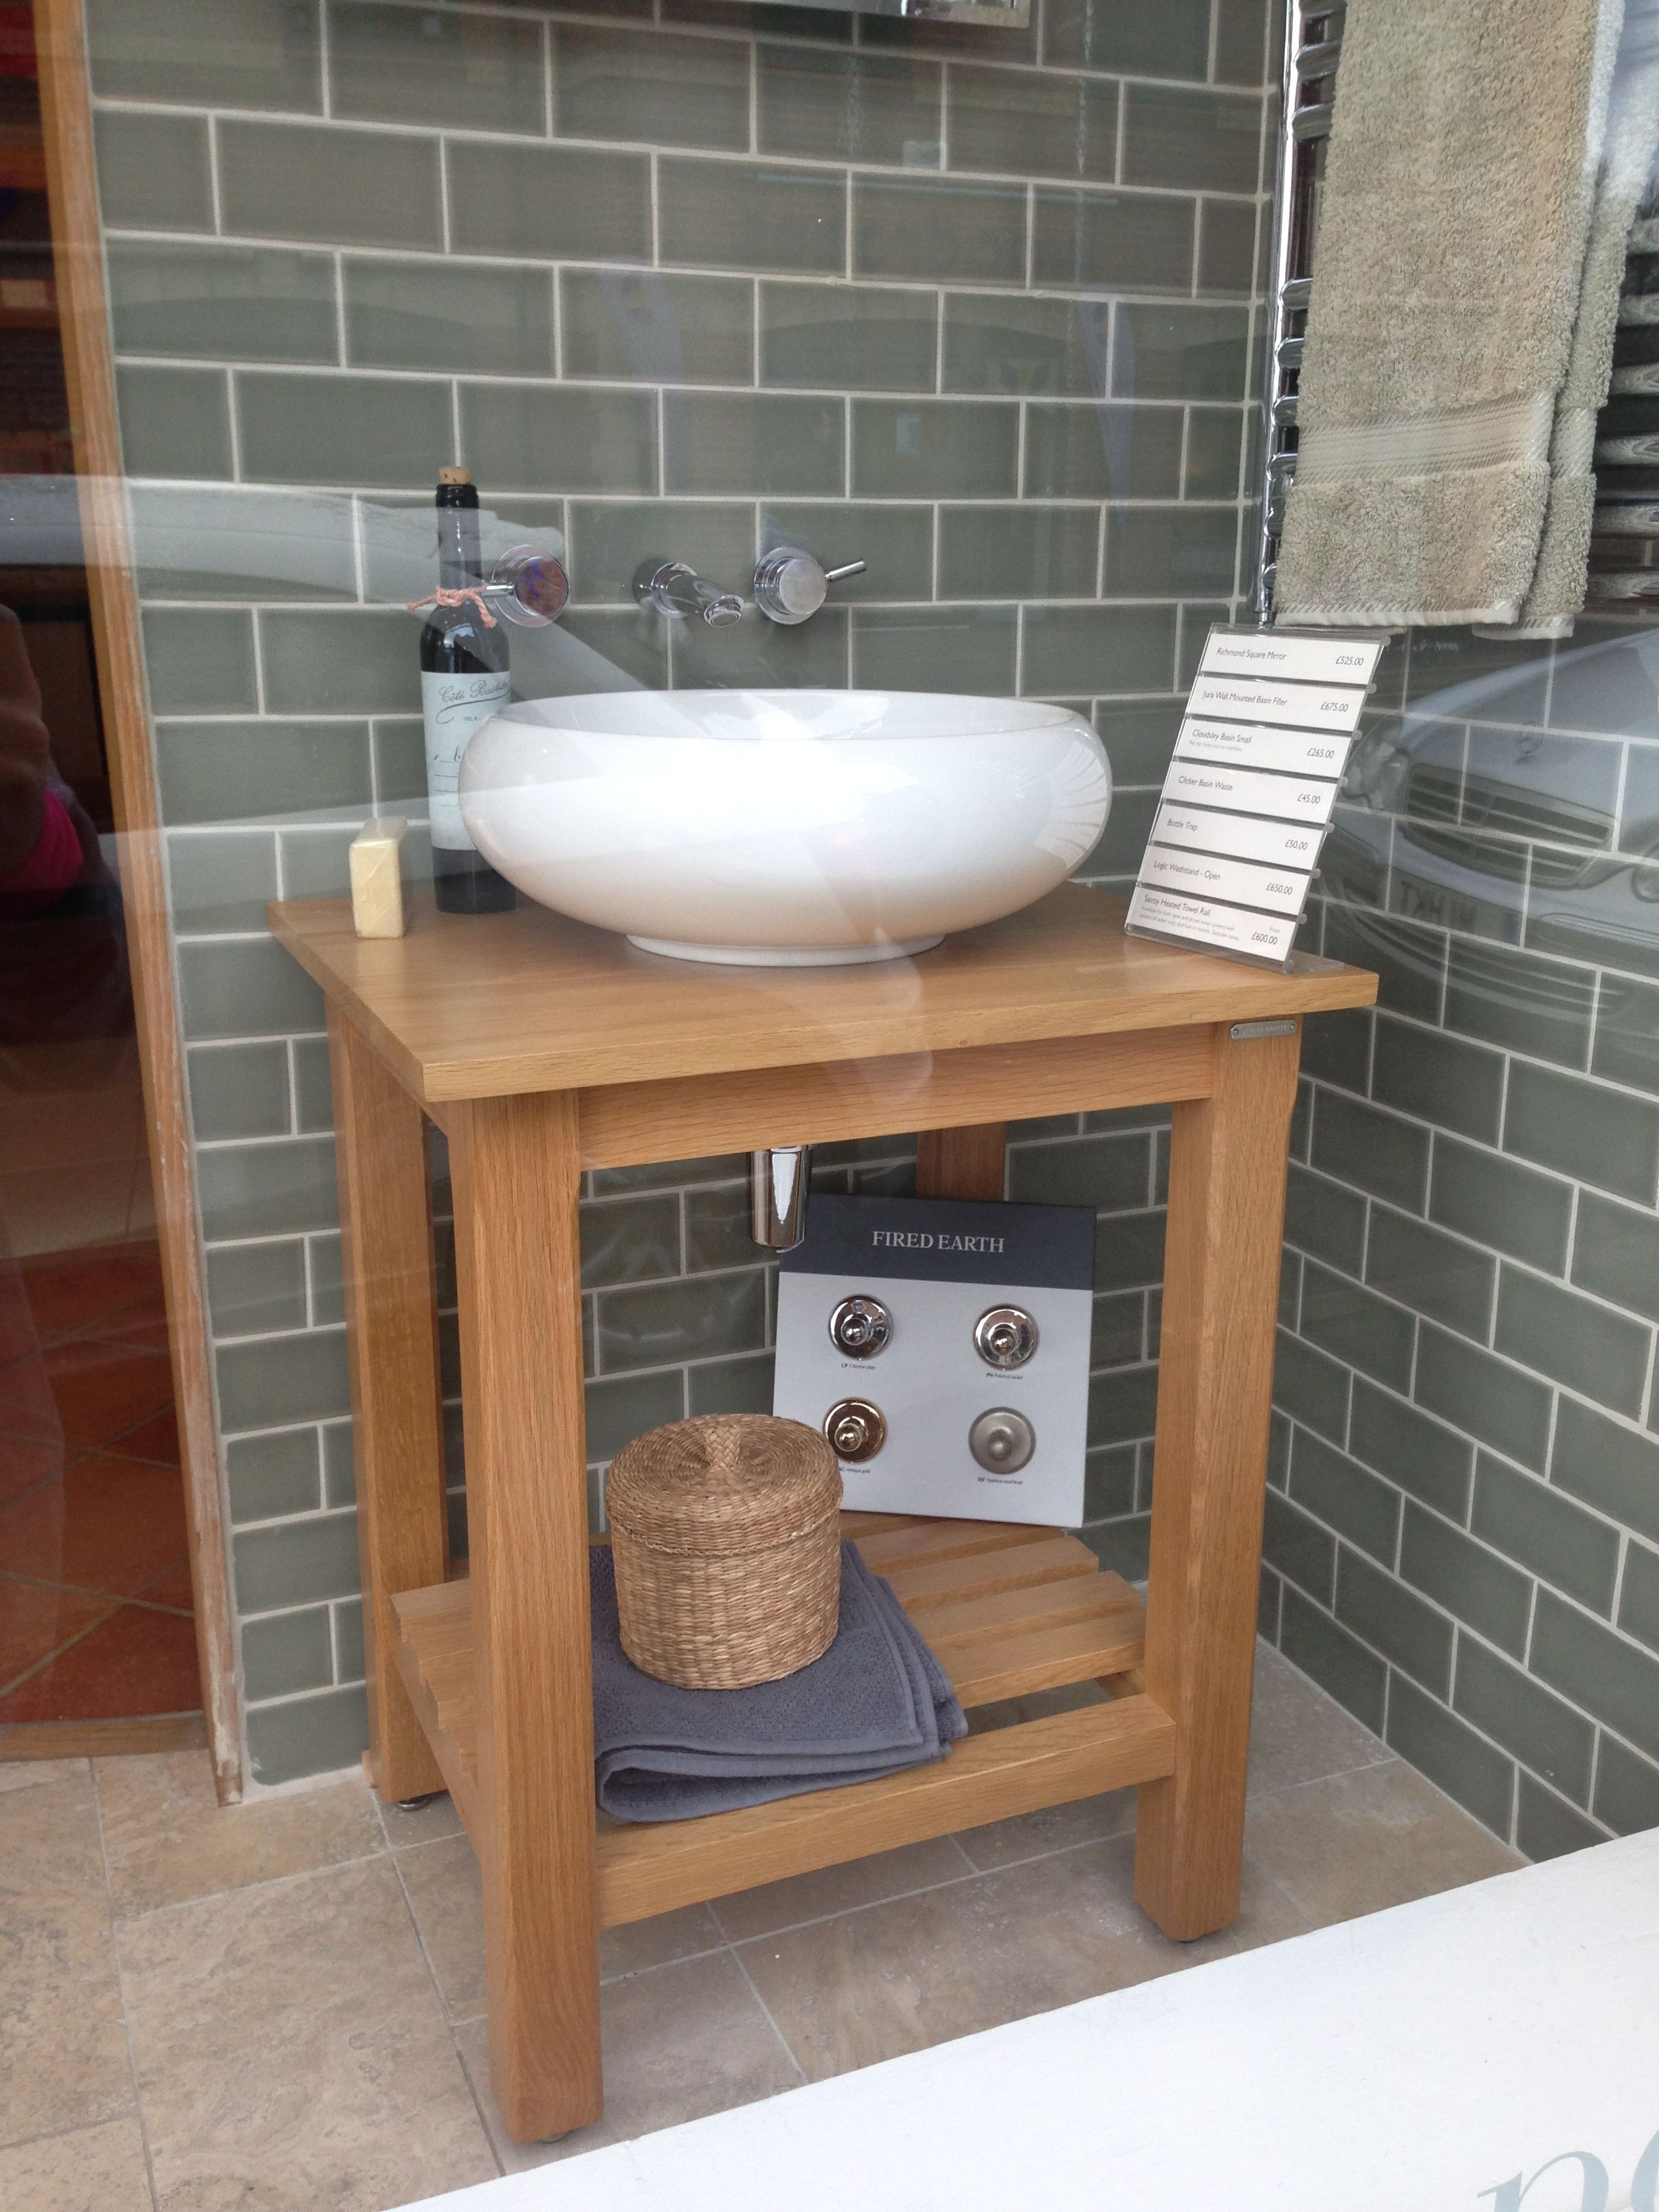 Basin on a stand